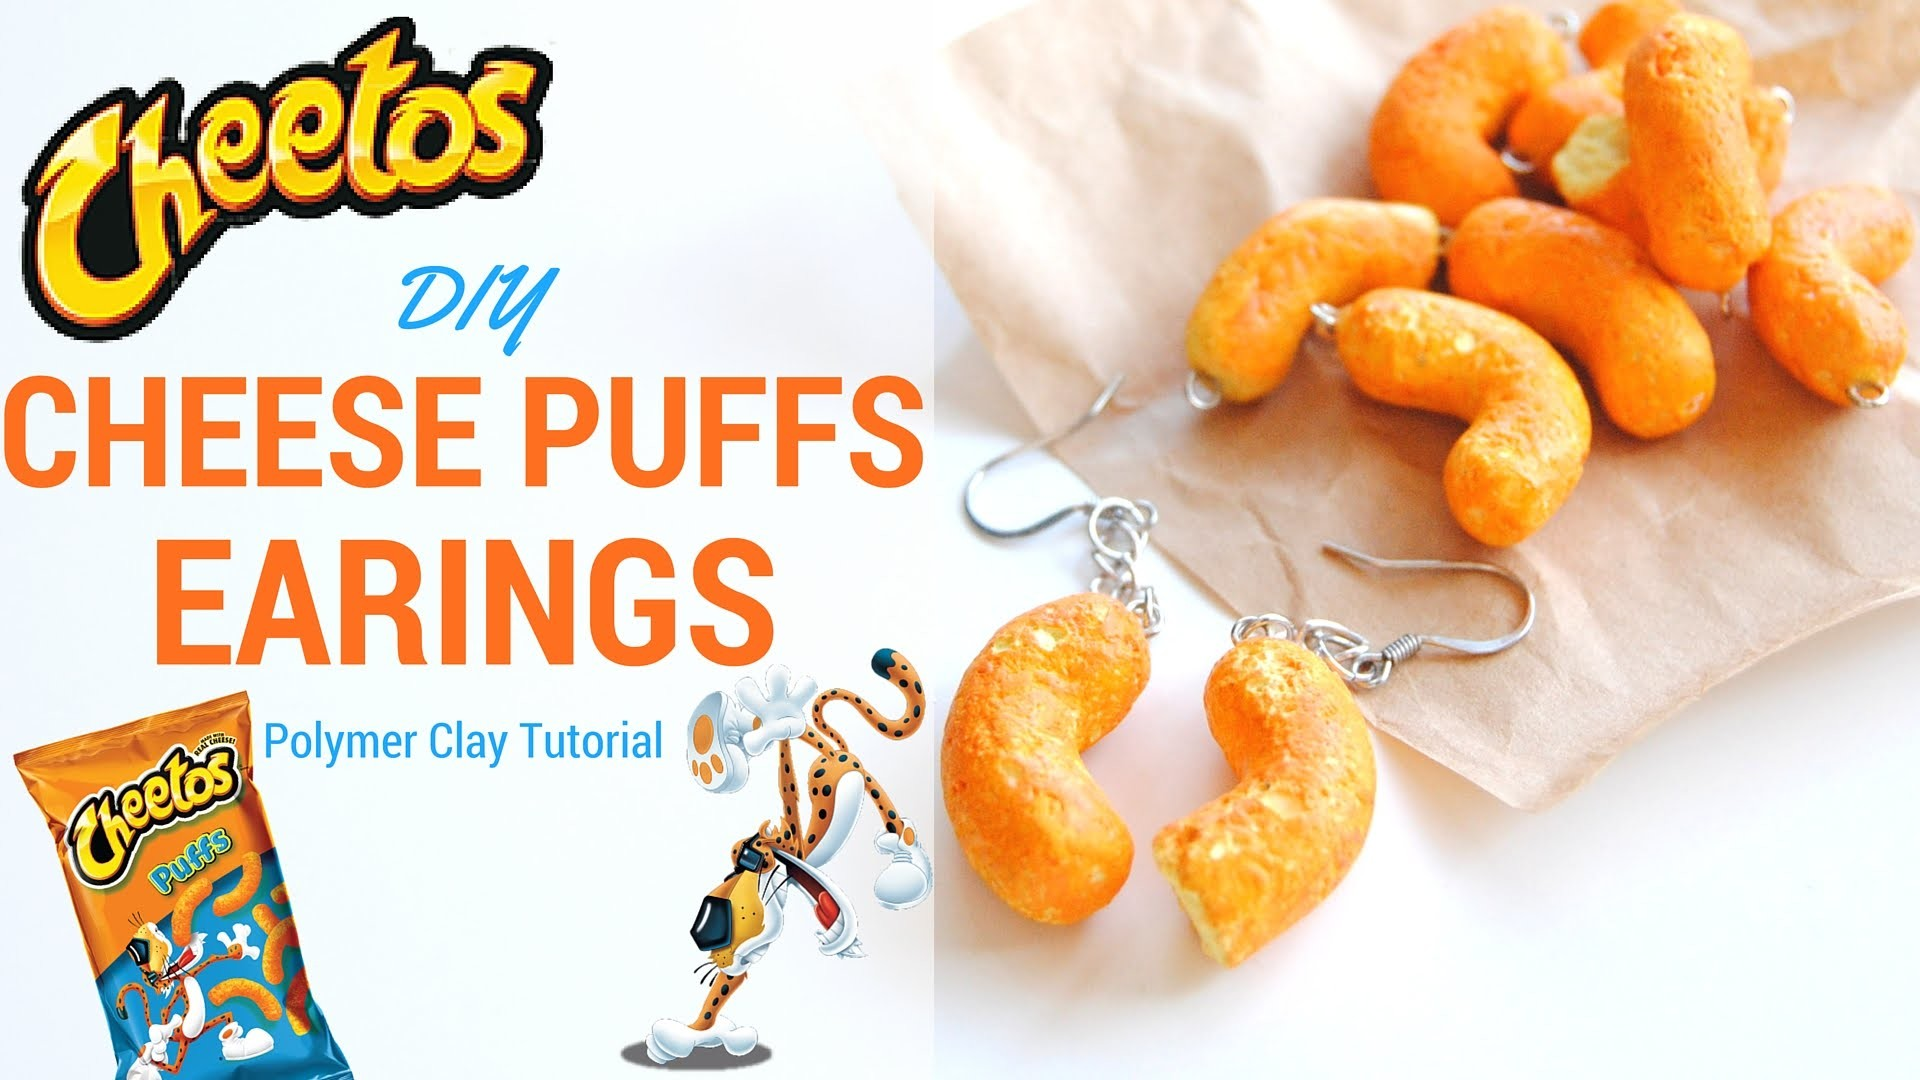 Cheetos Cheese Puff Polymer Clay Earings